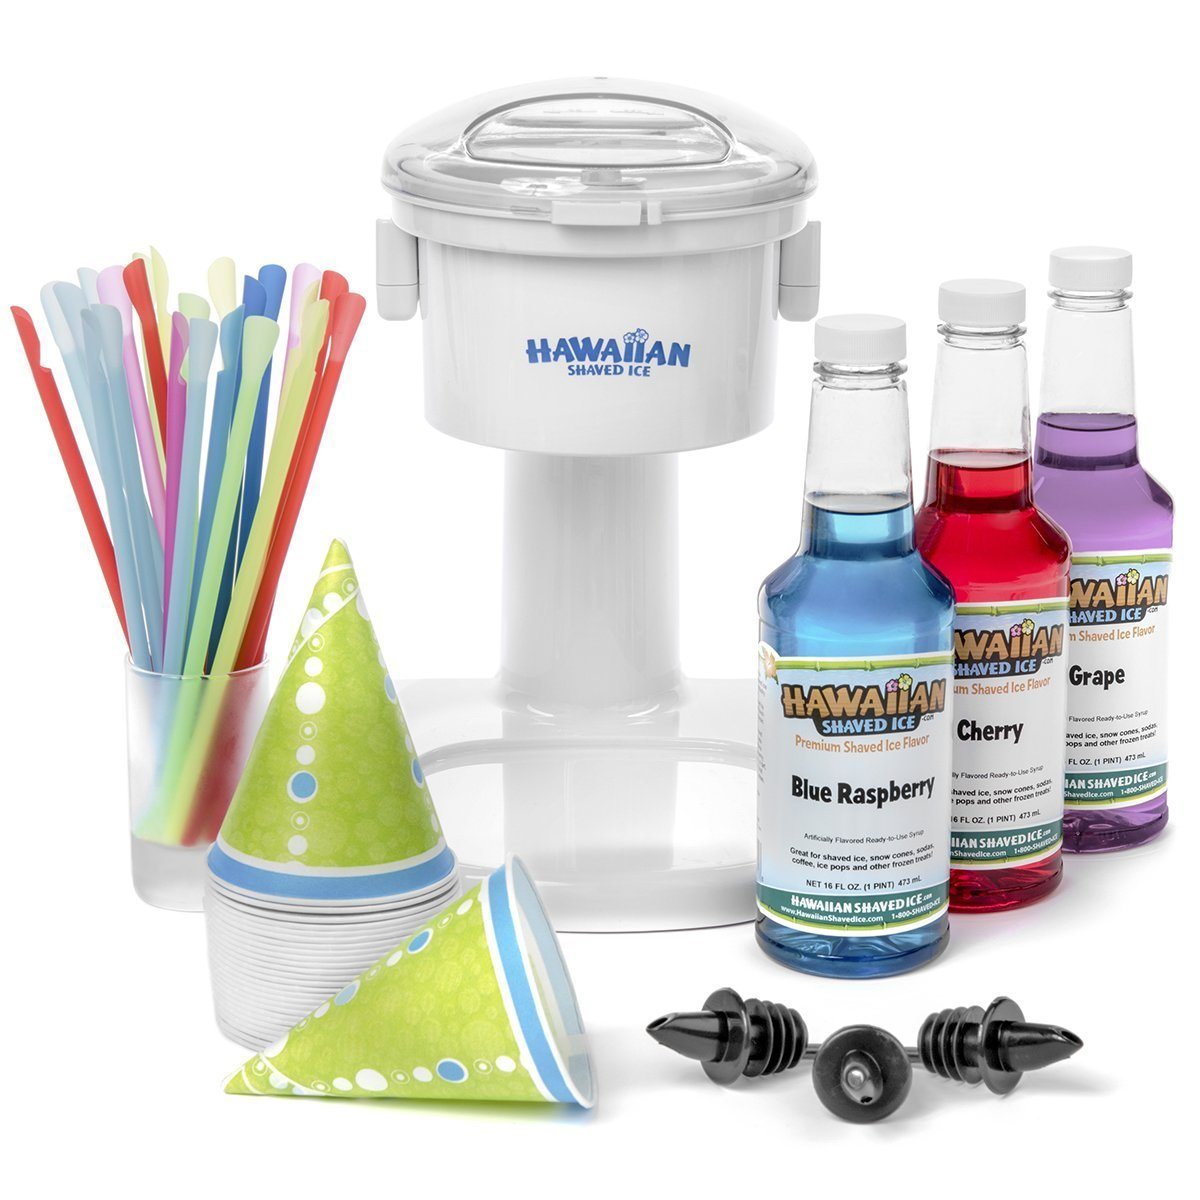 Top 9 Best Kids Snowcones Machine Reviews in 2021 13